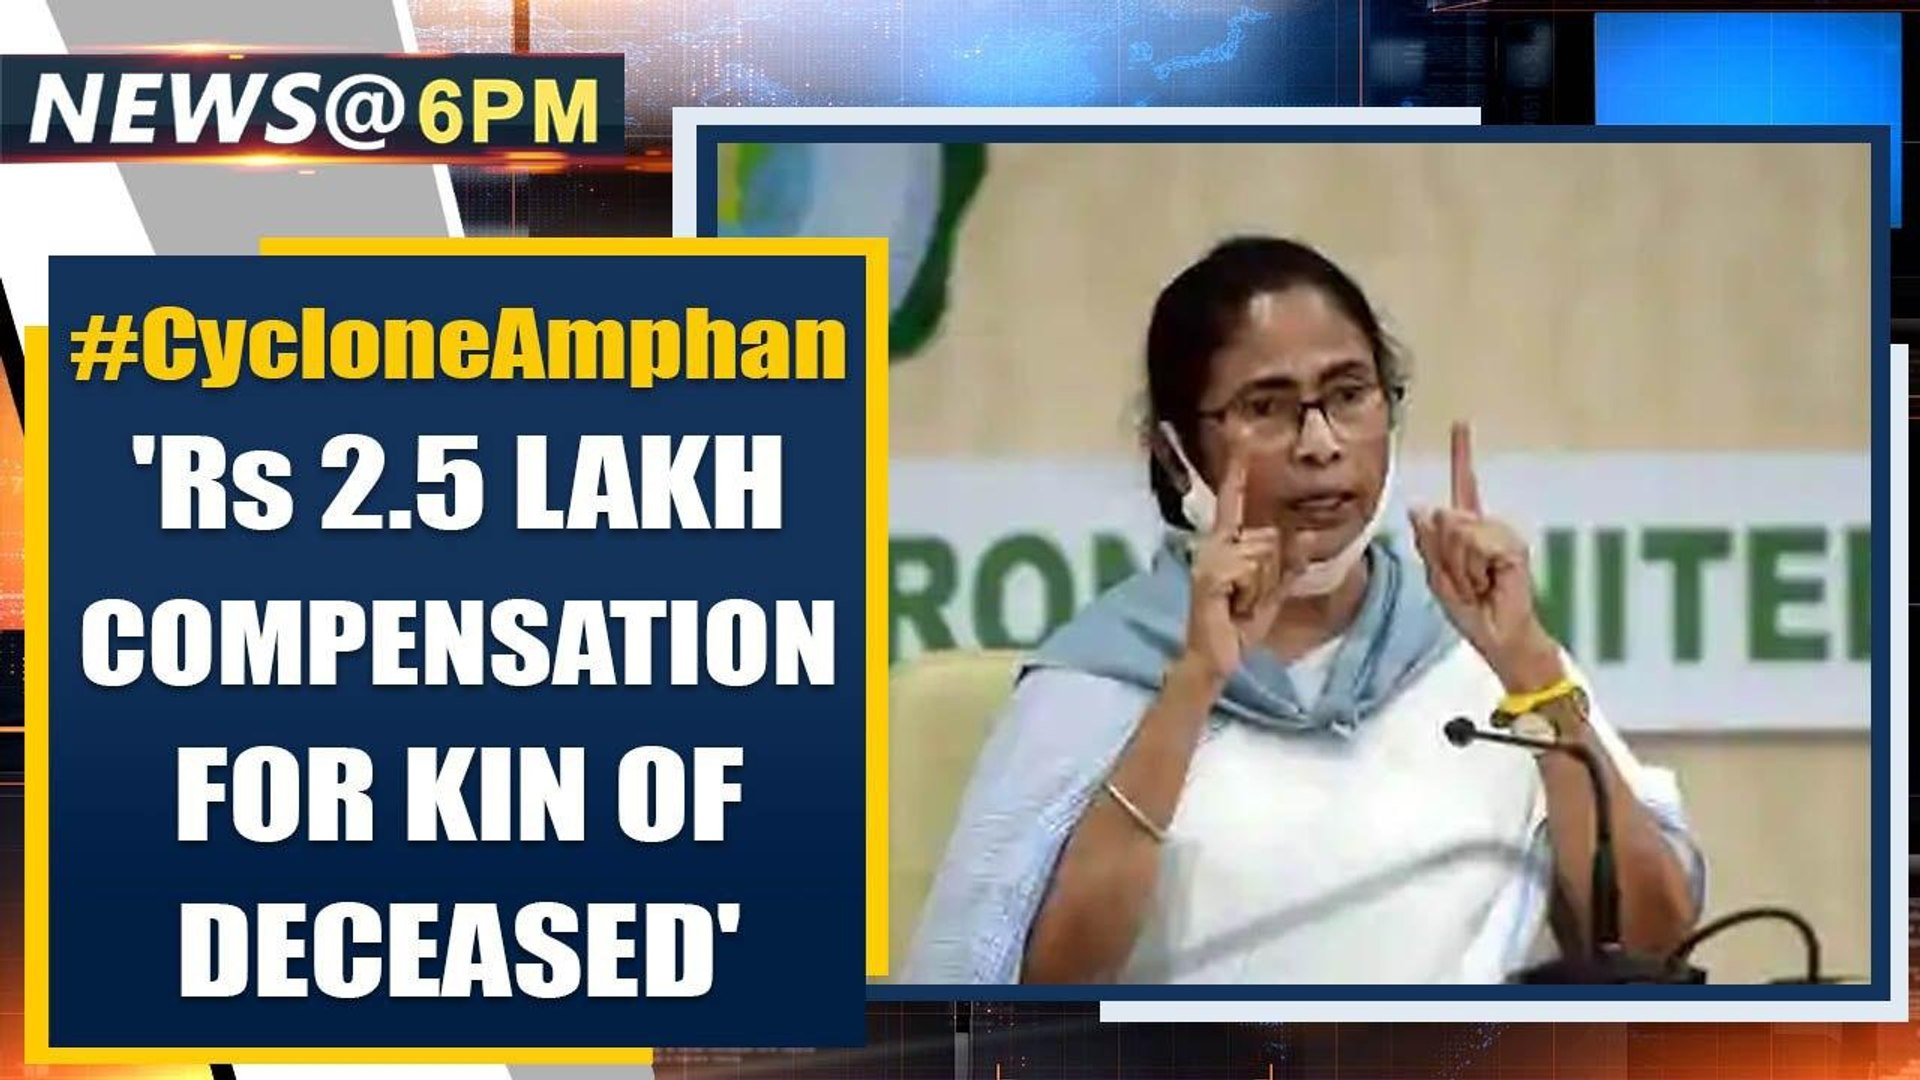 Cyclone Amphan: West Bengal CM announces compensation of Rs. 2.5 lakh for kin of deceased | Oneindia